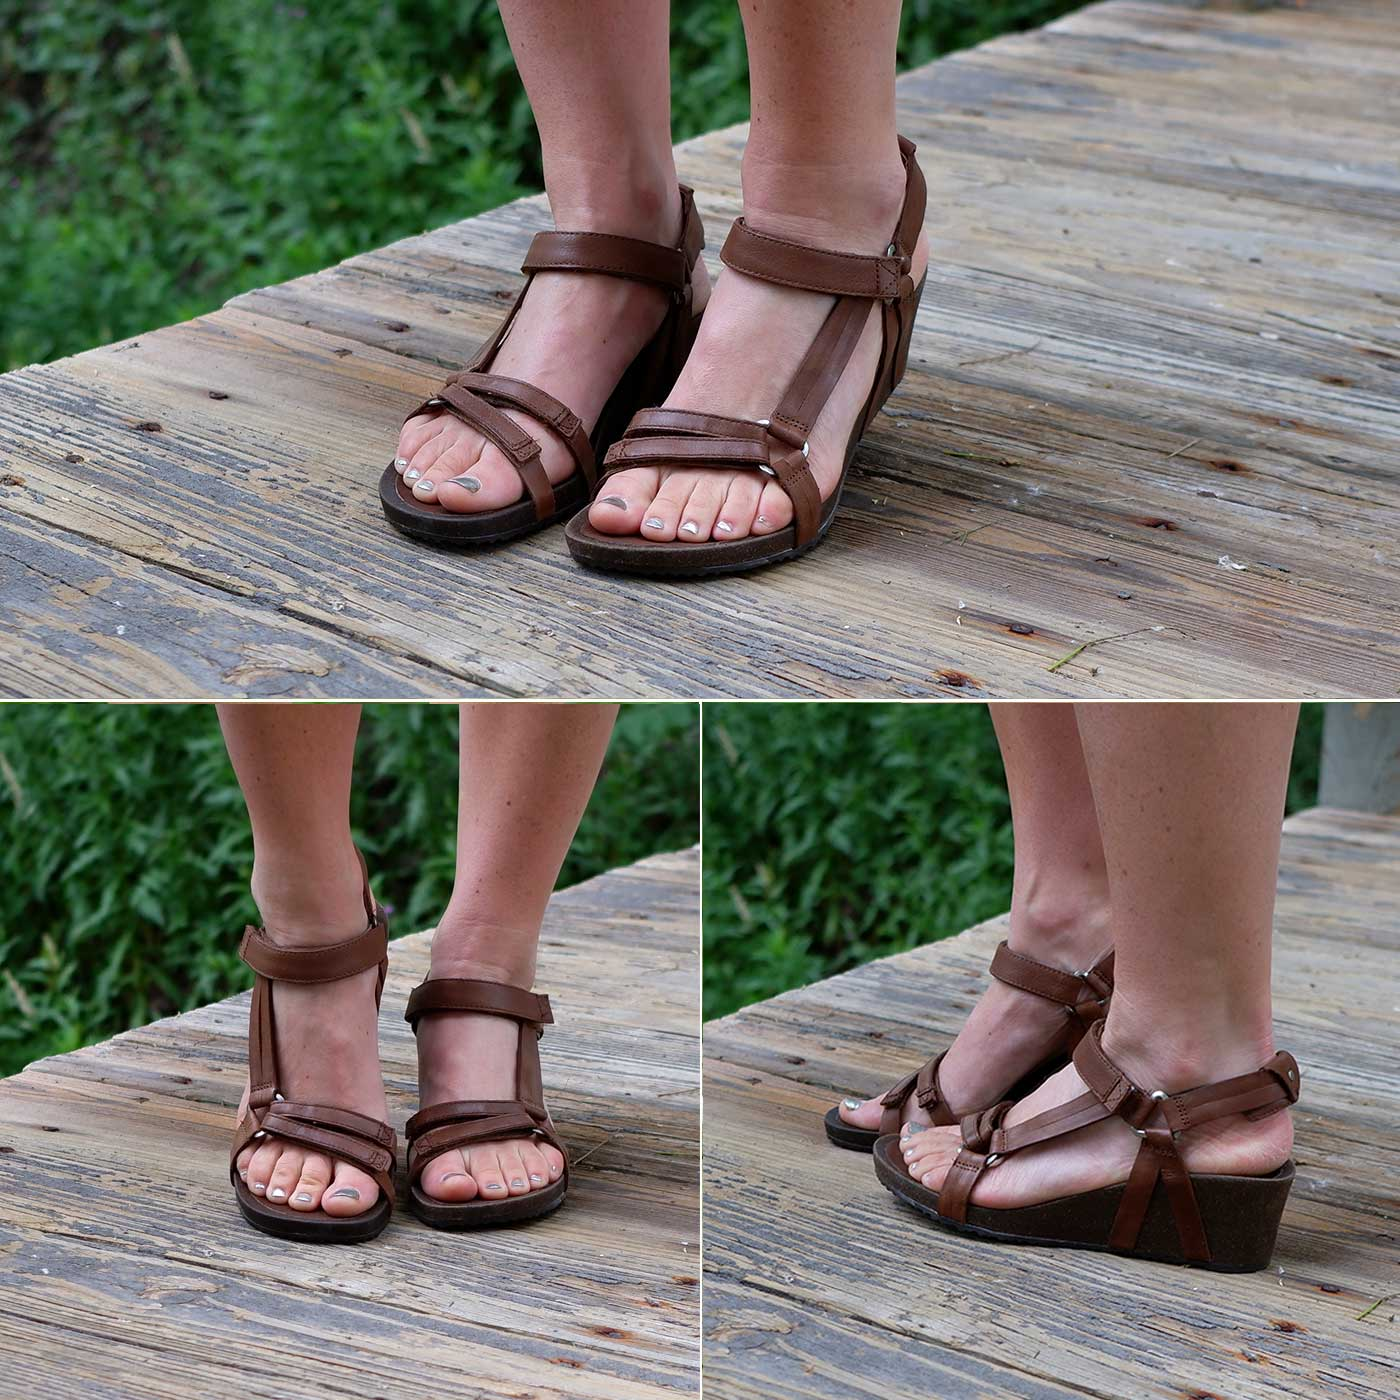 Should Shoes Teva Every Sandalsamp; HaveOhio 5 Outside Girl Outdoorsy zqpjUGVLSM